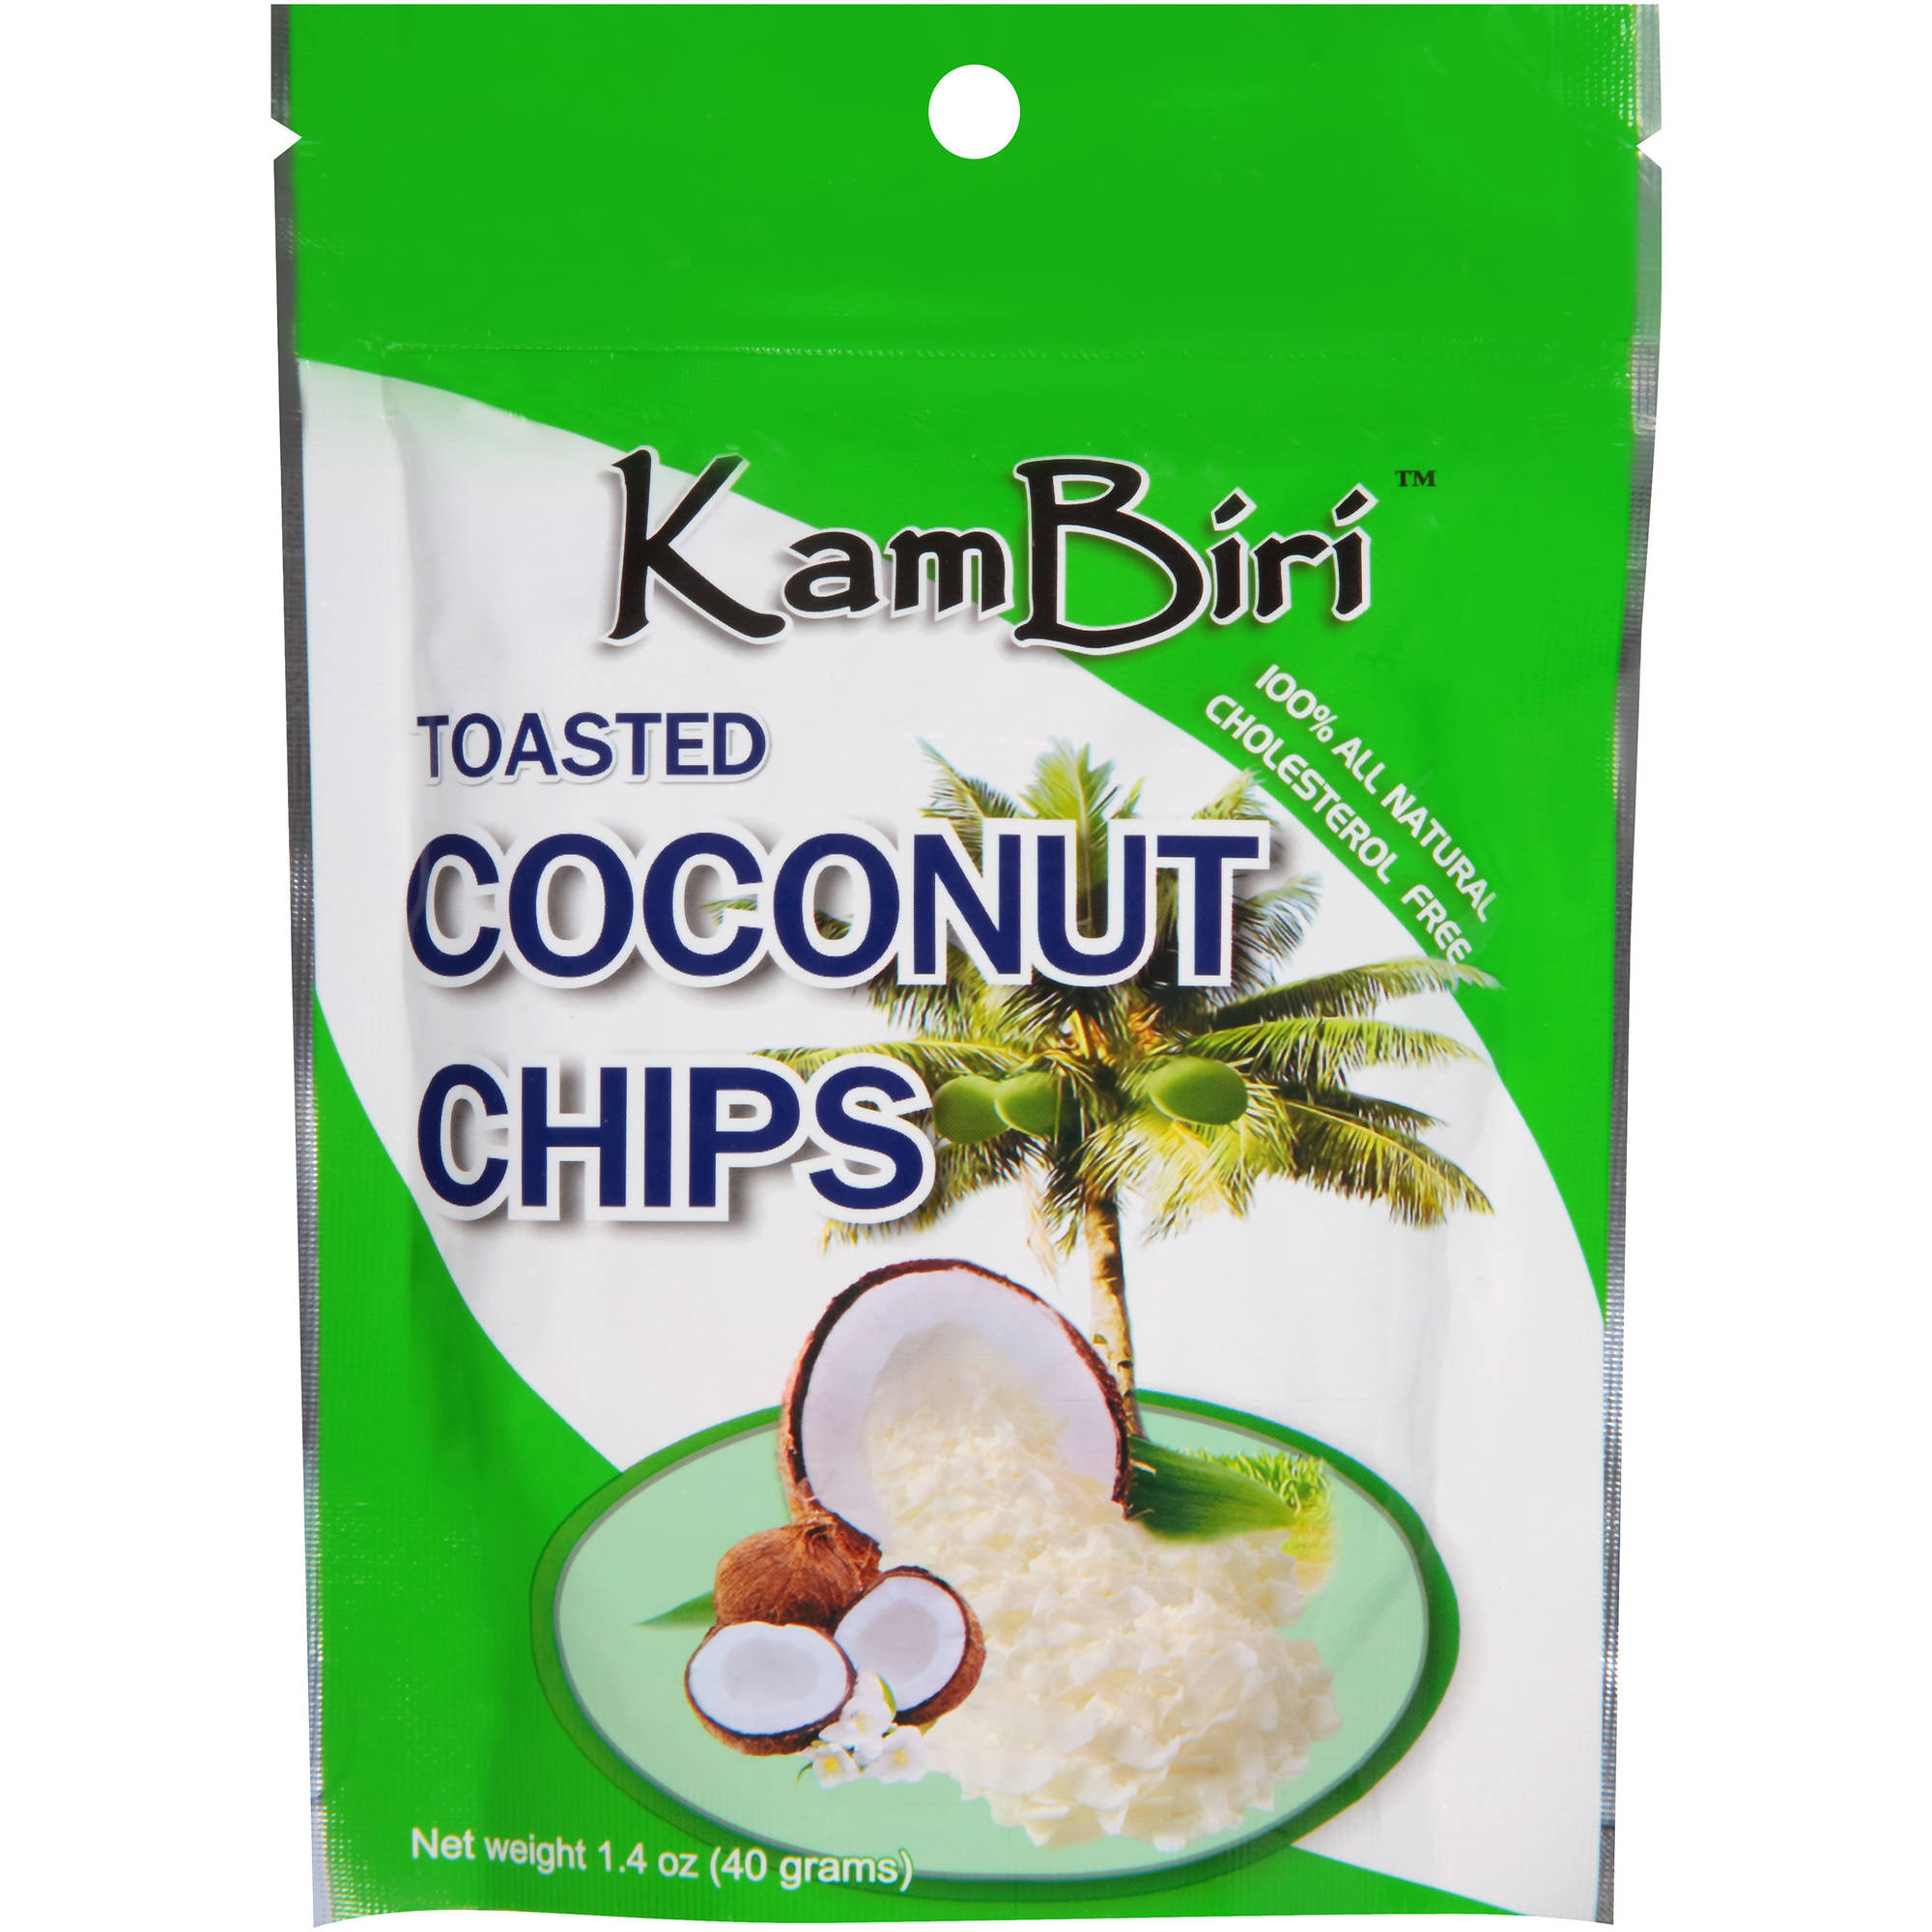 Kambiri Toasted Coconut Chips, 1.4 oz by Lexmark International, Inc